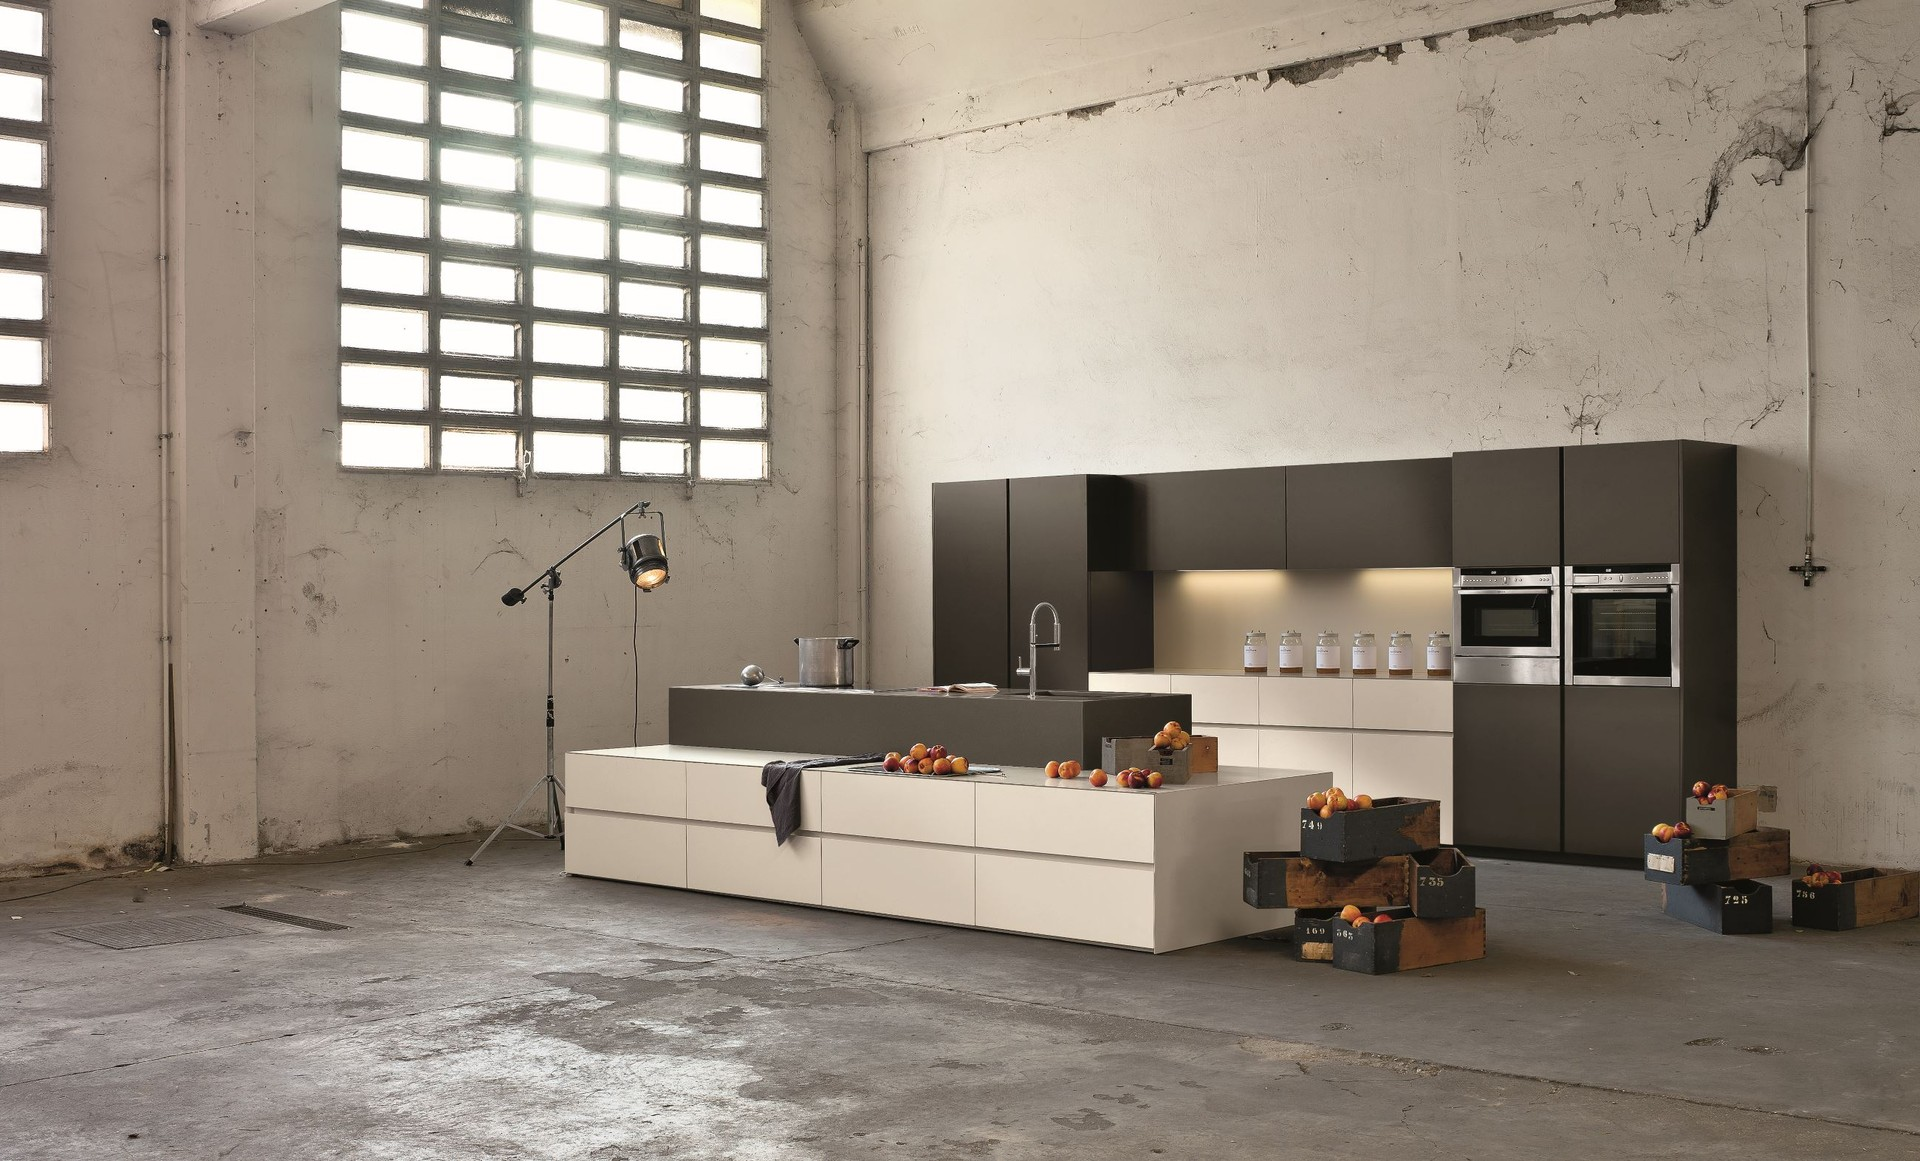 Strato Küchen Kitchens Sanitair And Kitchens Archello